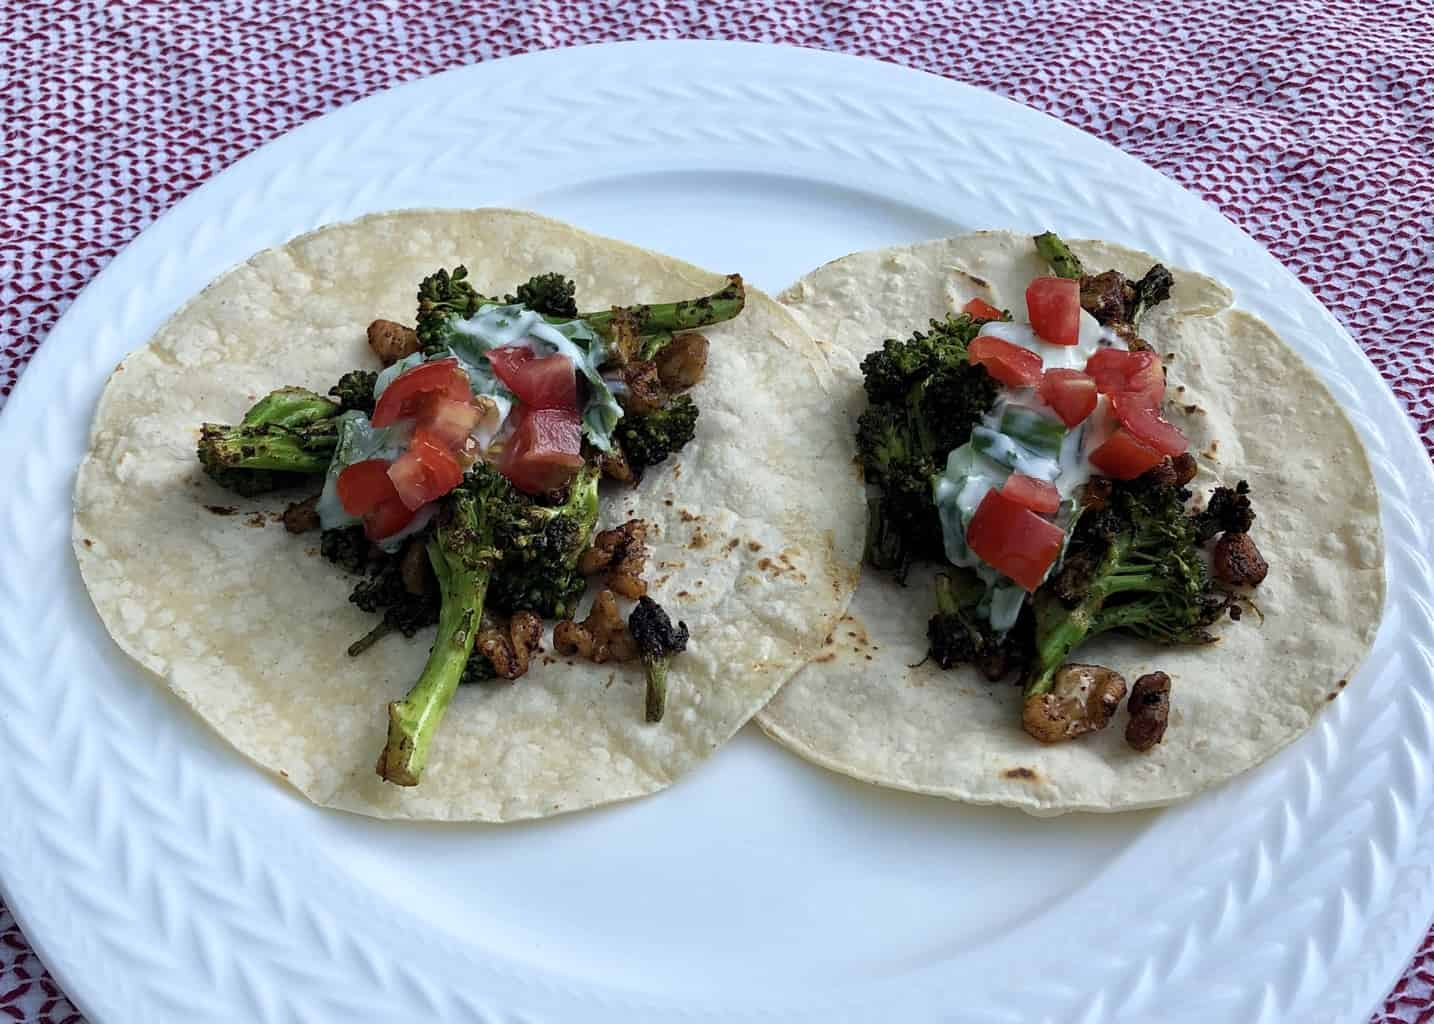 Broccoli Tacos with Curry Seasoning and Walnuts